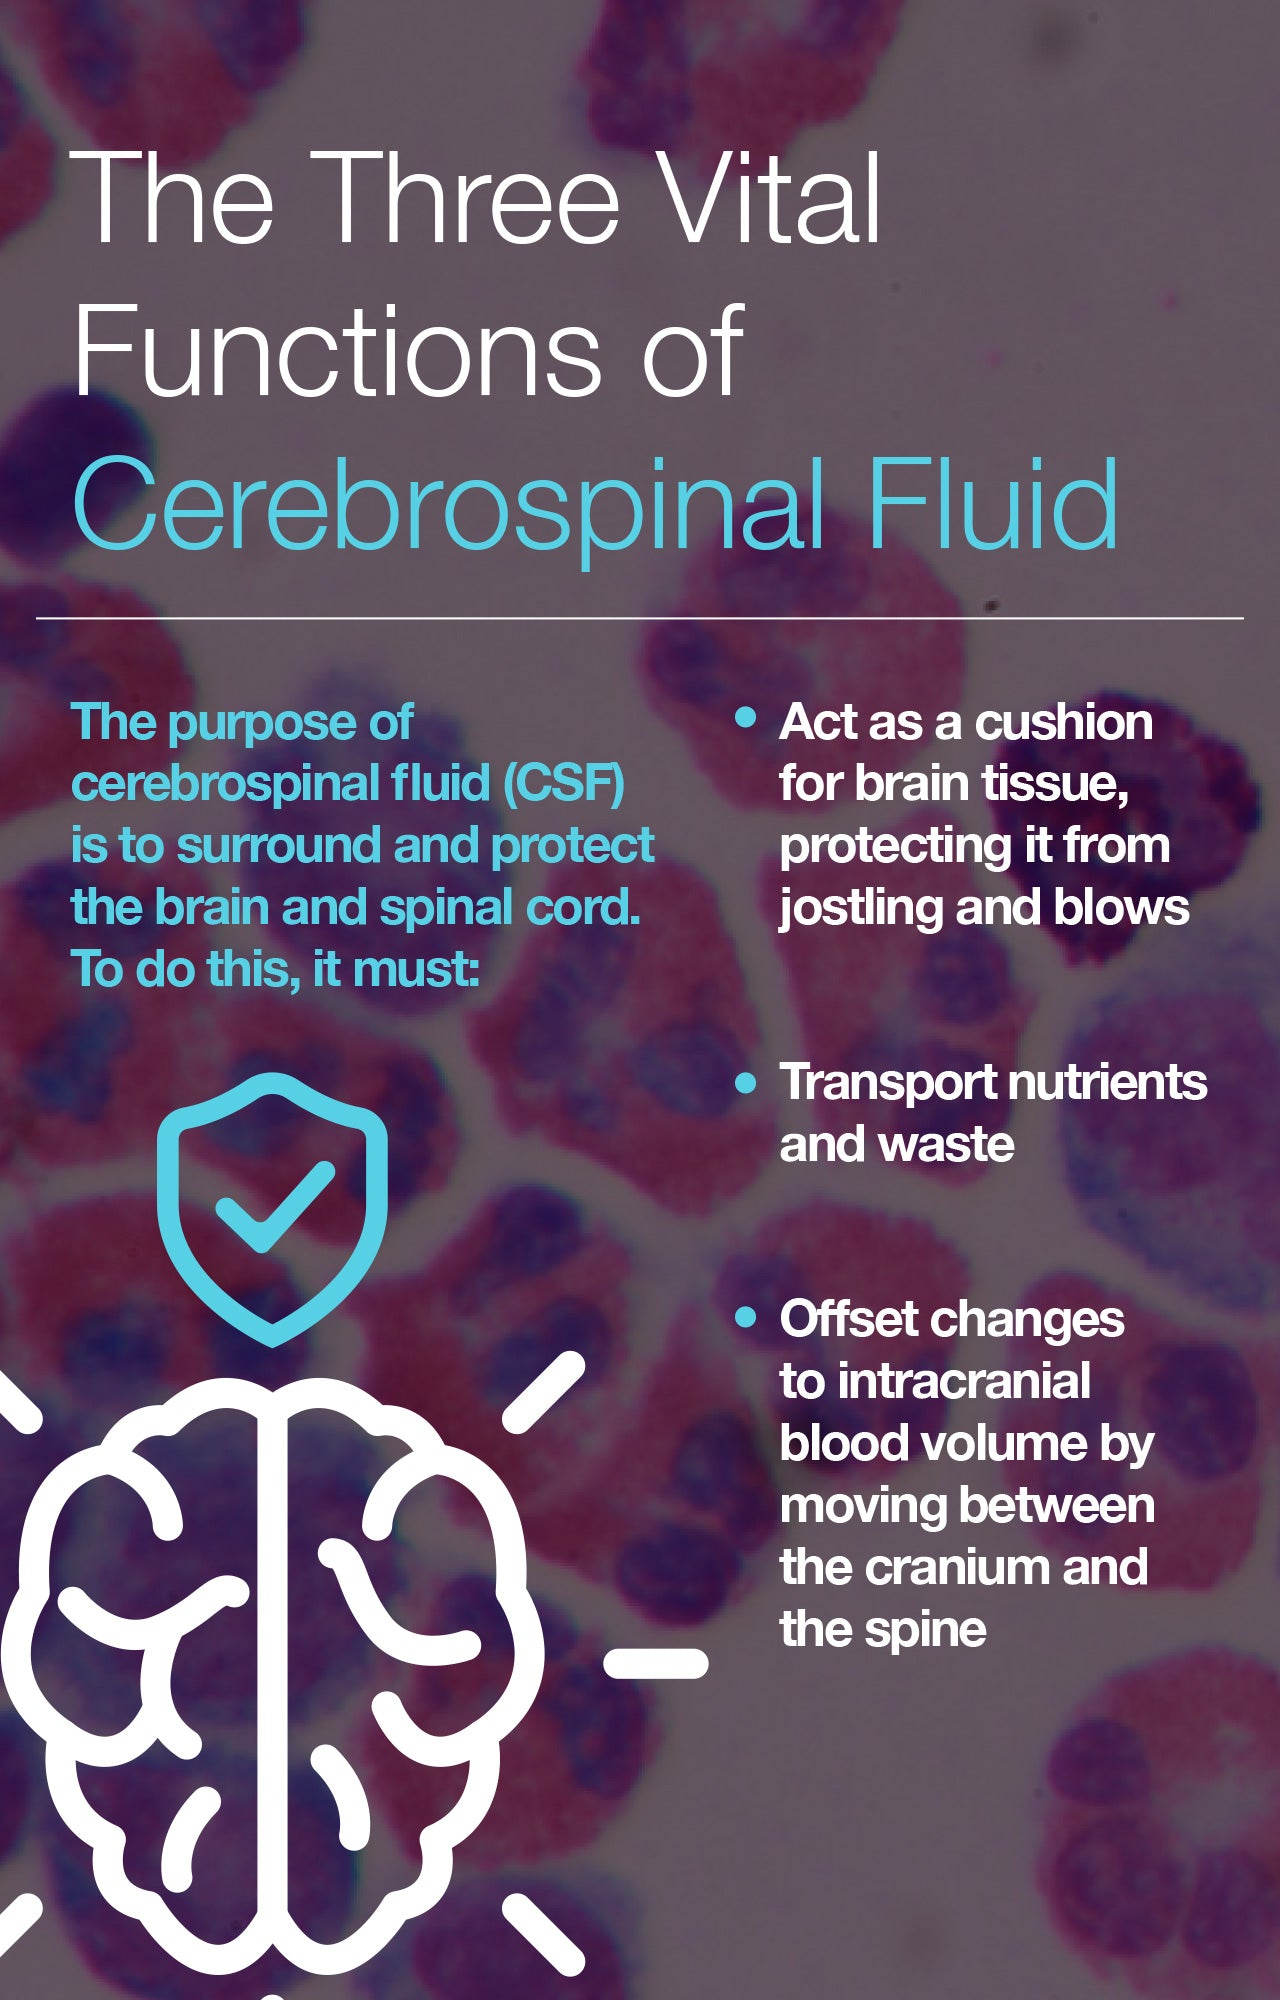 The Three Vital Functions of Cerebrospinal Fluid